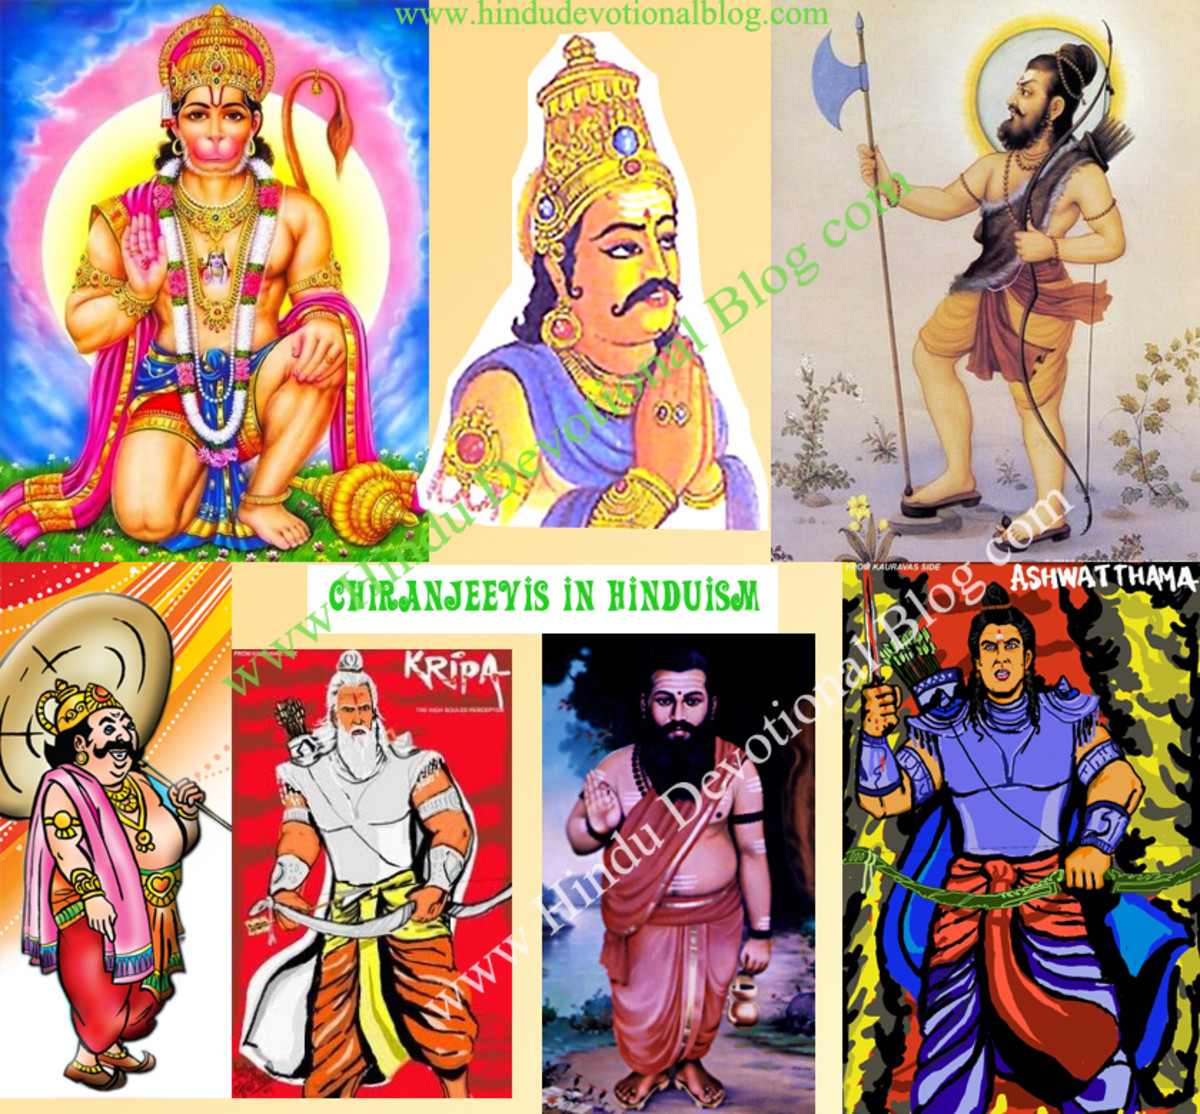 The Immortals of Hindu Mythology: Chiranjeevi